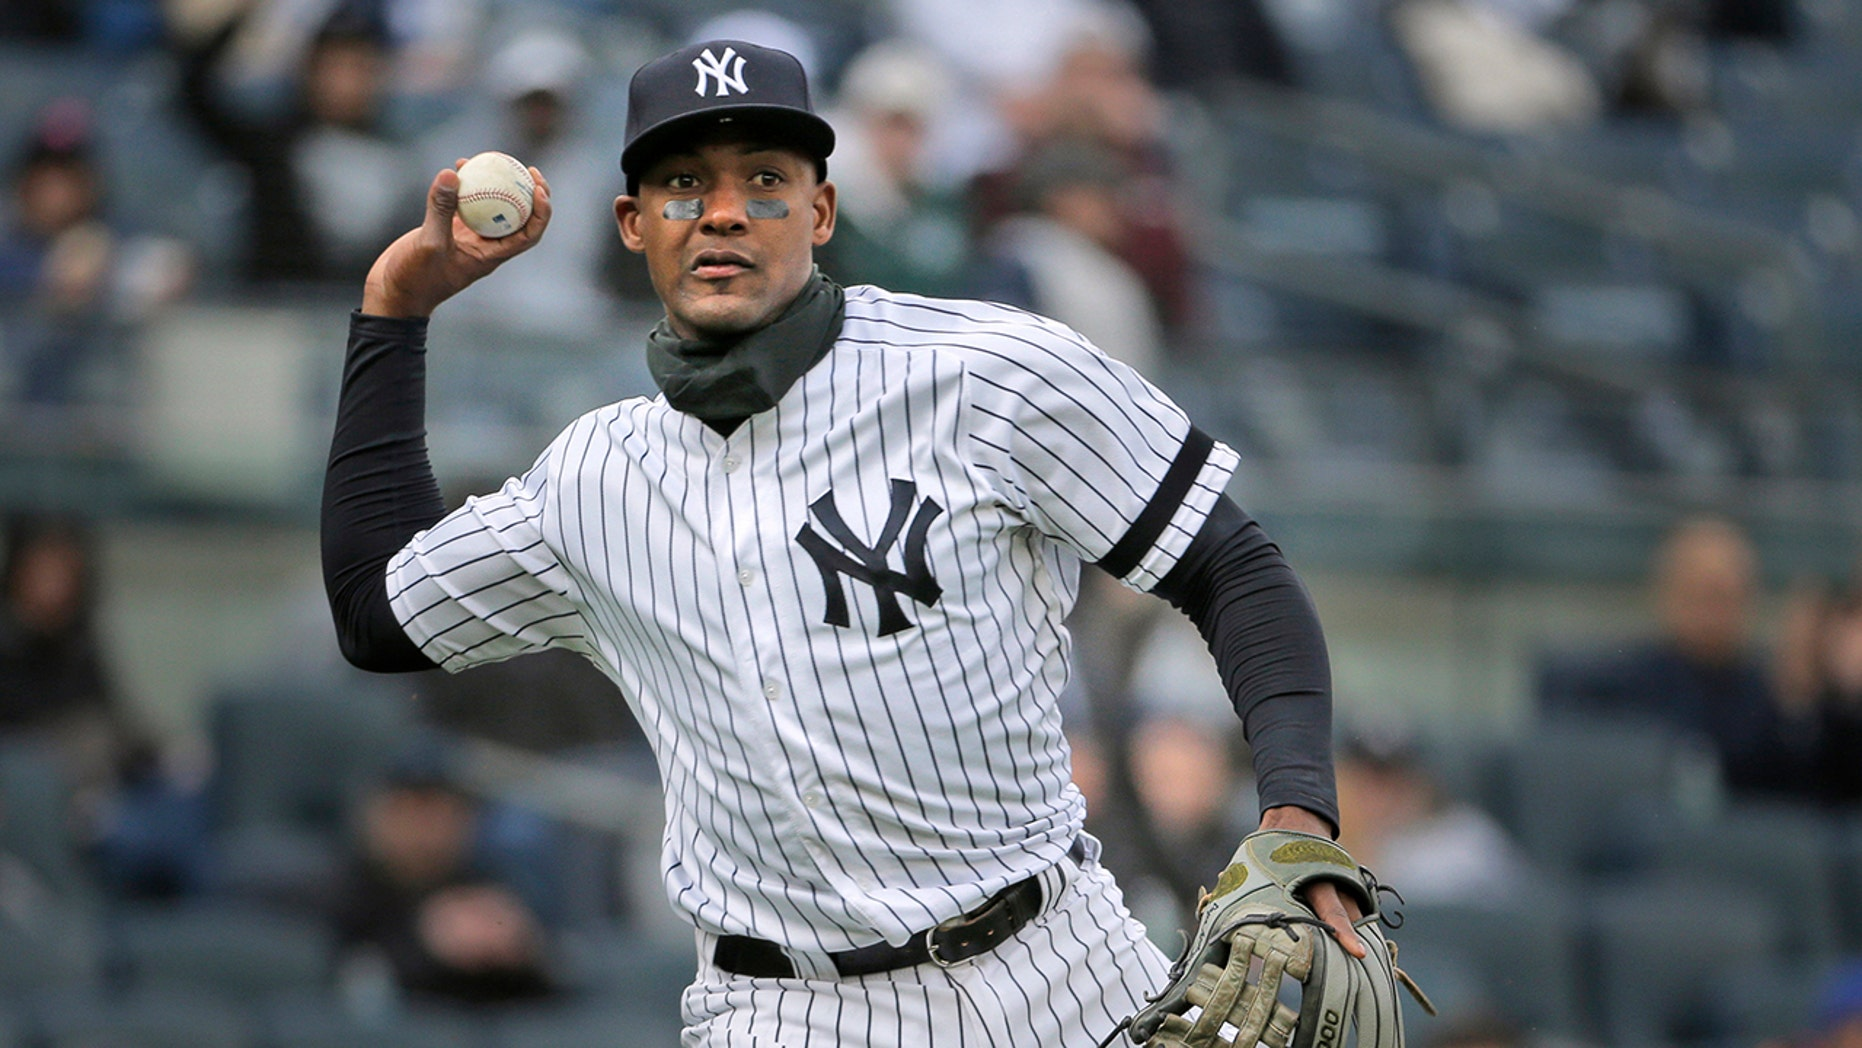 New York Yankees' Miguel Andujar throws to first base during the second inning of the team's baseball game against the Baltimore Orioles at Yankee Stadium in New York. (AP Photo/Seth Wenig, File)